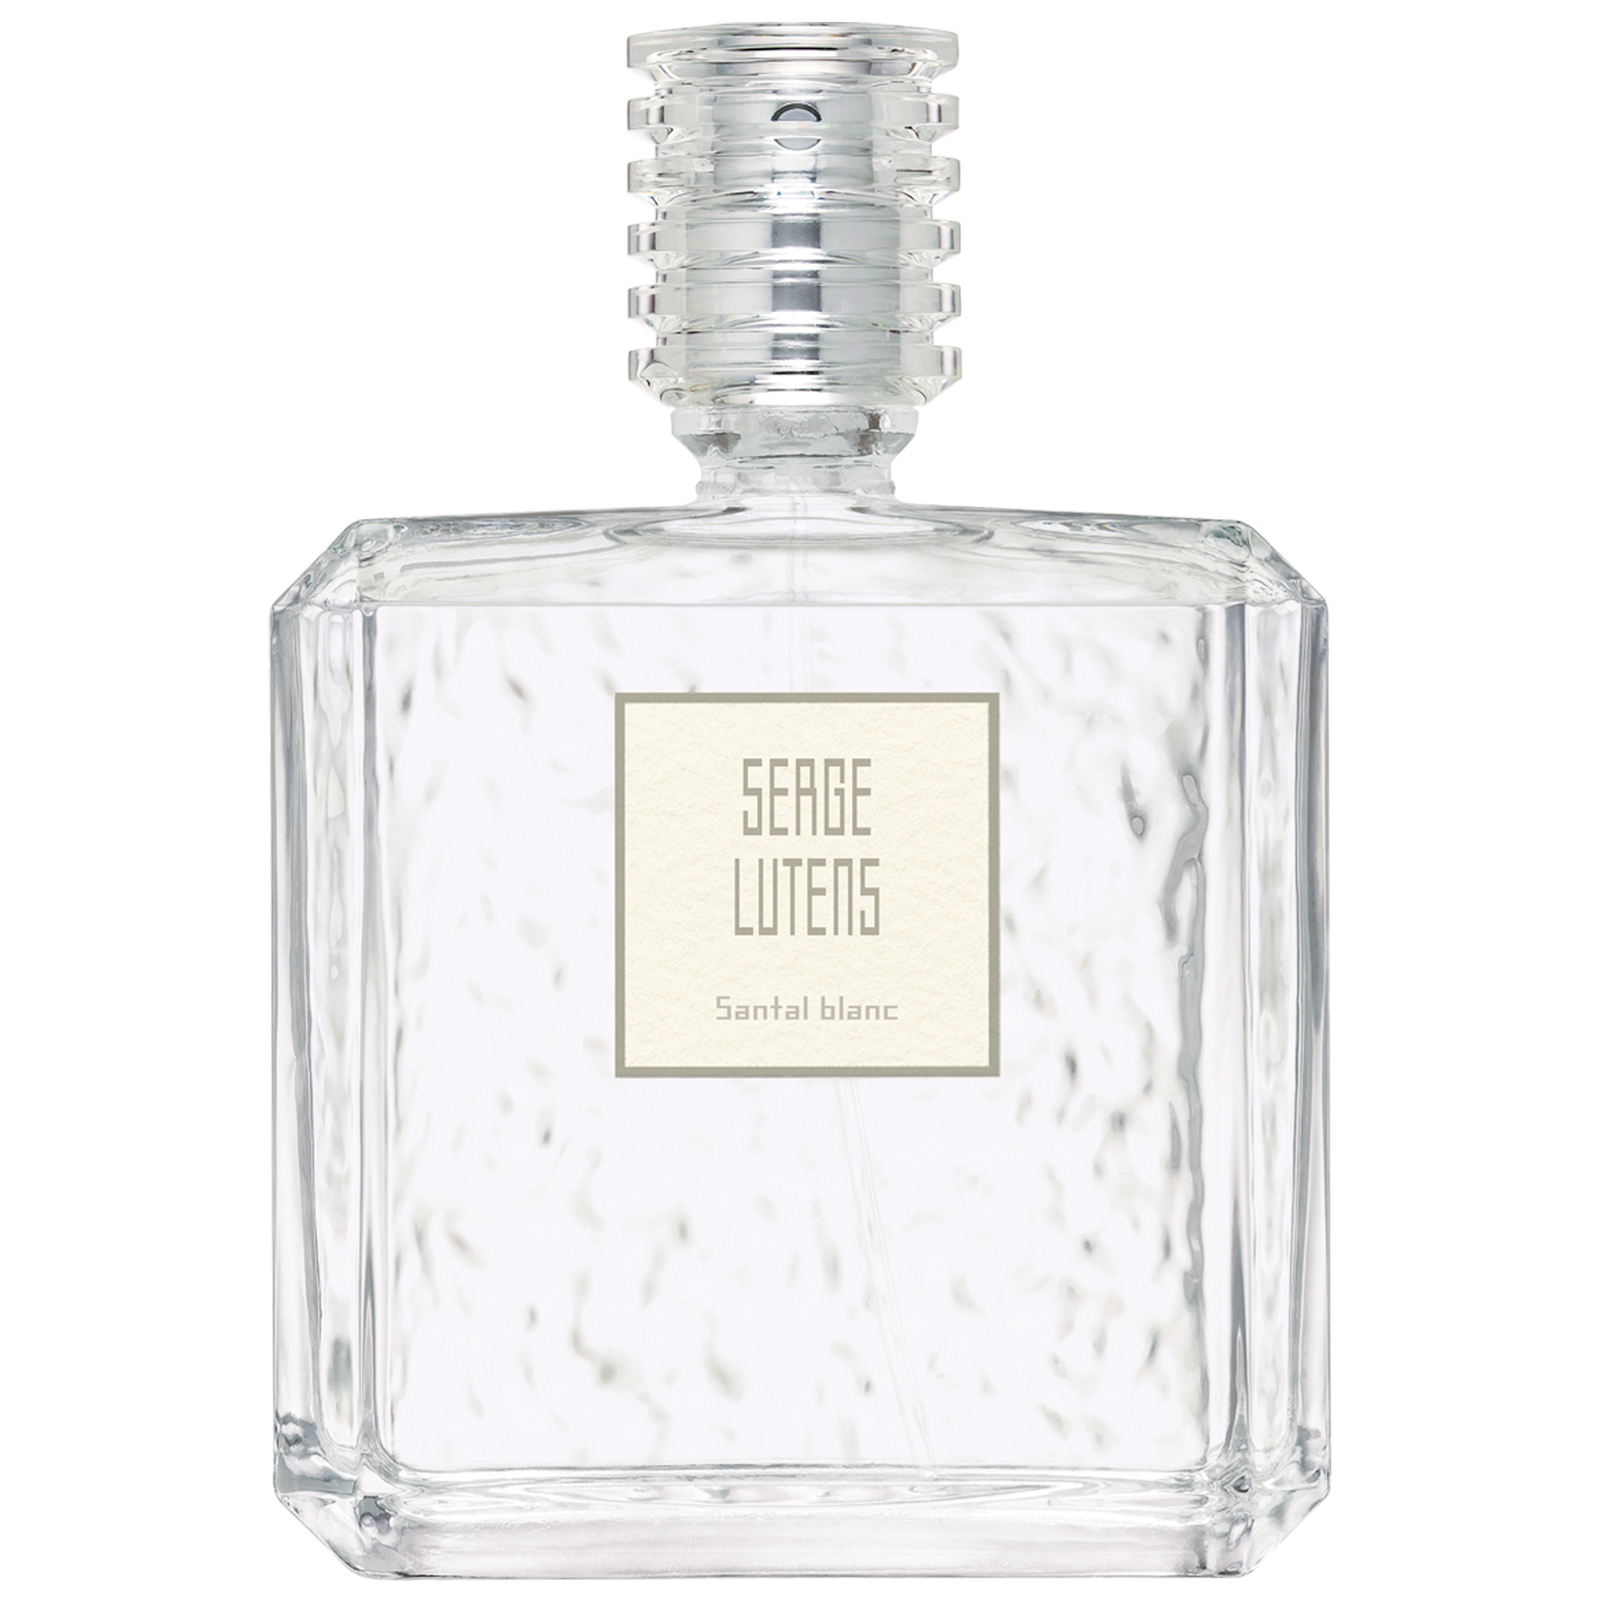 Serge Lutens Santal Blanc Eau de Parfum Spray 100ml